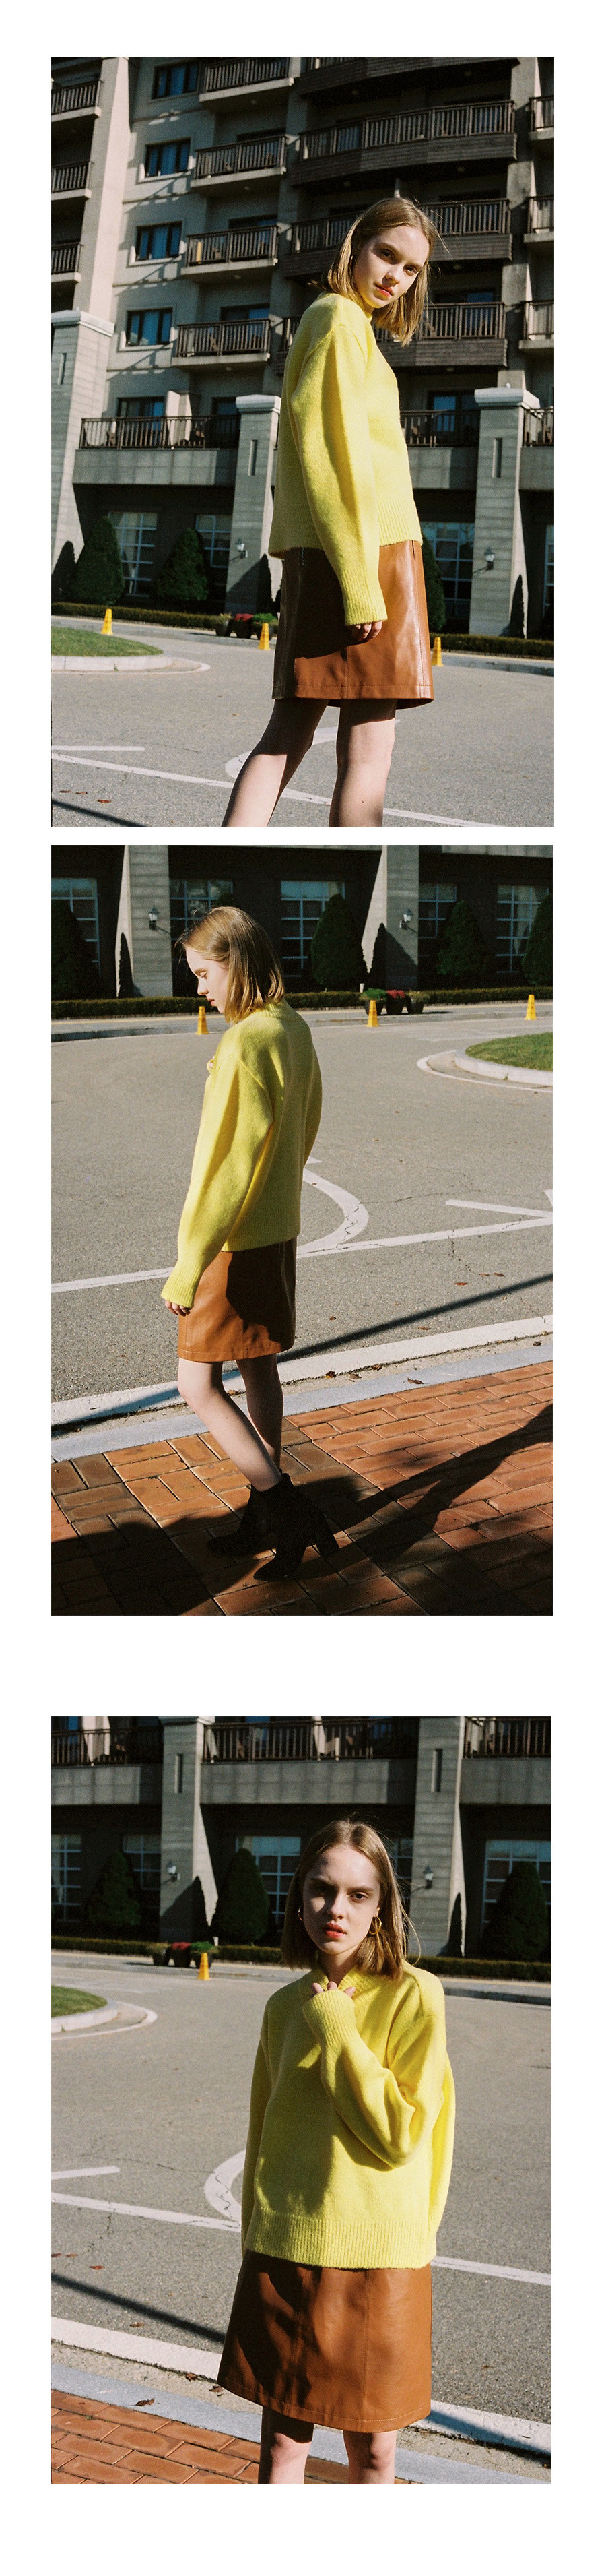 레이브(RAIVE) Oversized High Neck Knit (Yellow)_VK8WP0510